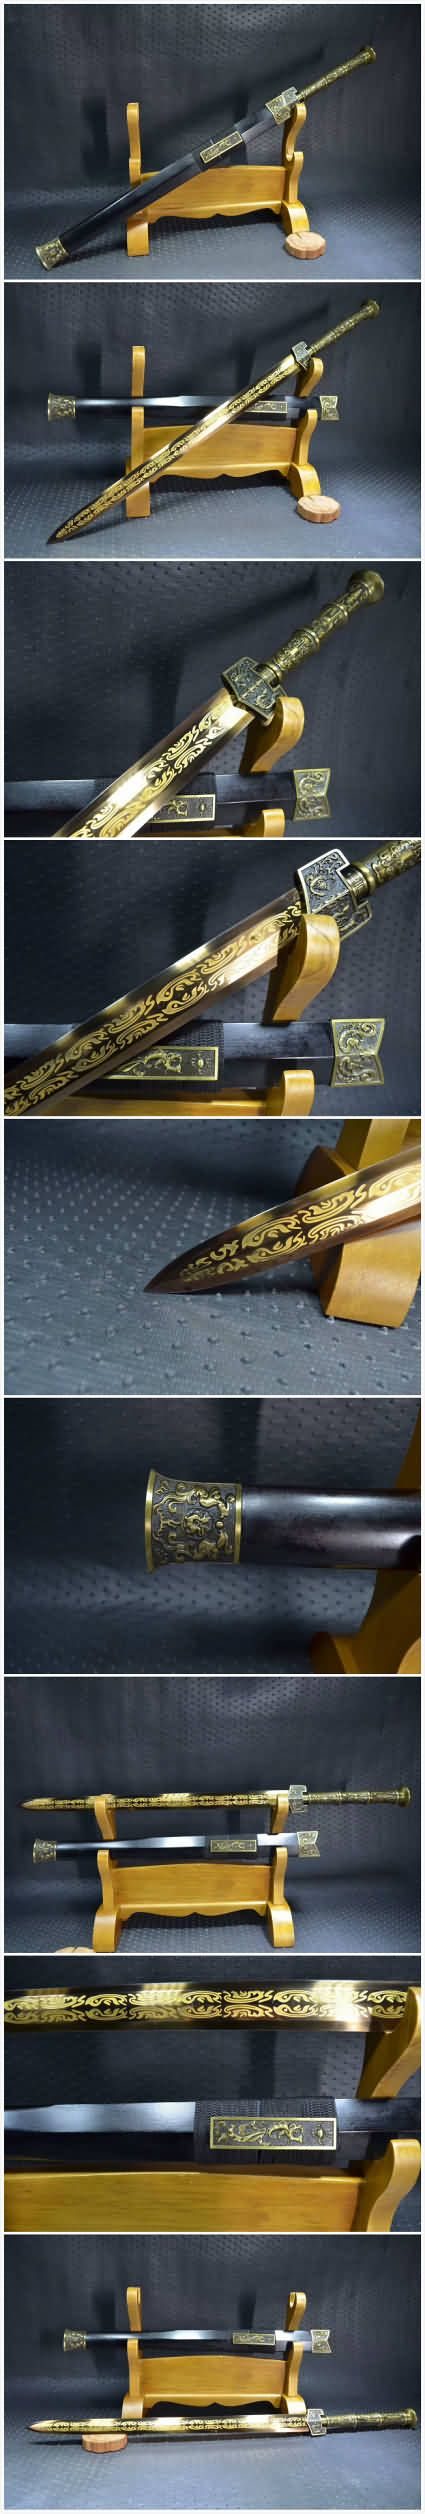 "Material:High manganese steel,eight surface,Surface etched pattern; Sword Type:Hand Made Sword;Package weight:2KG; Overall Length:30""/78CM;Blade Length:20""/53CM; Scabbard:Black wood;Handle:Alloy;Knife fitted:Alloy,silver surface treatment; Condition:Brand New;Origin:Longquan Zhejiang China;Accessories:Cotton sword bag.No wooden frame."